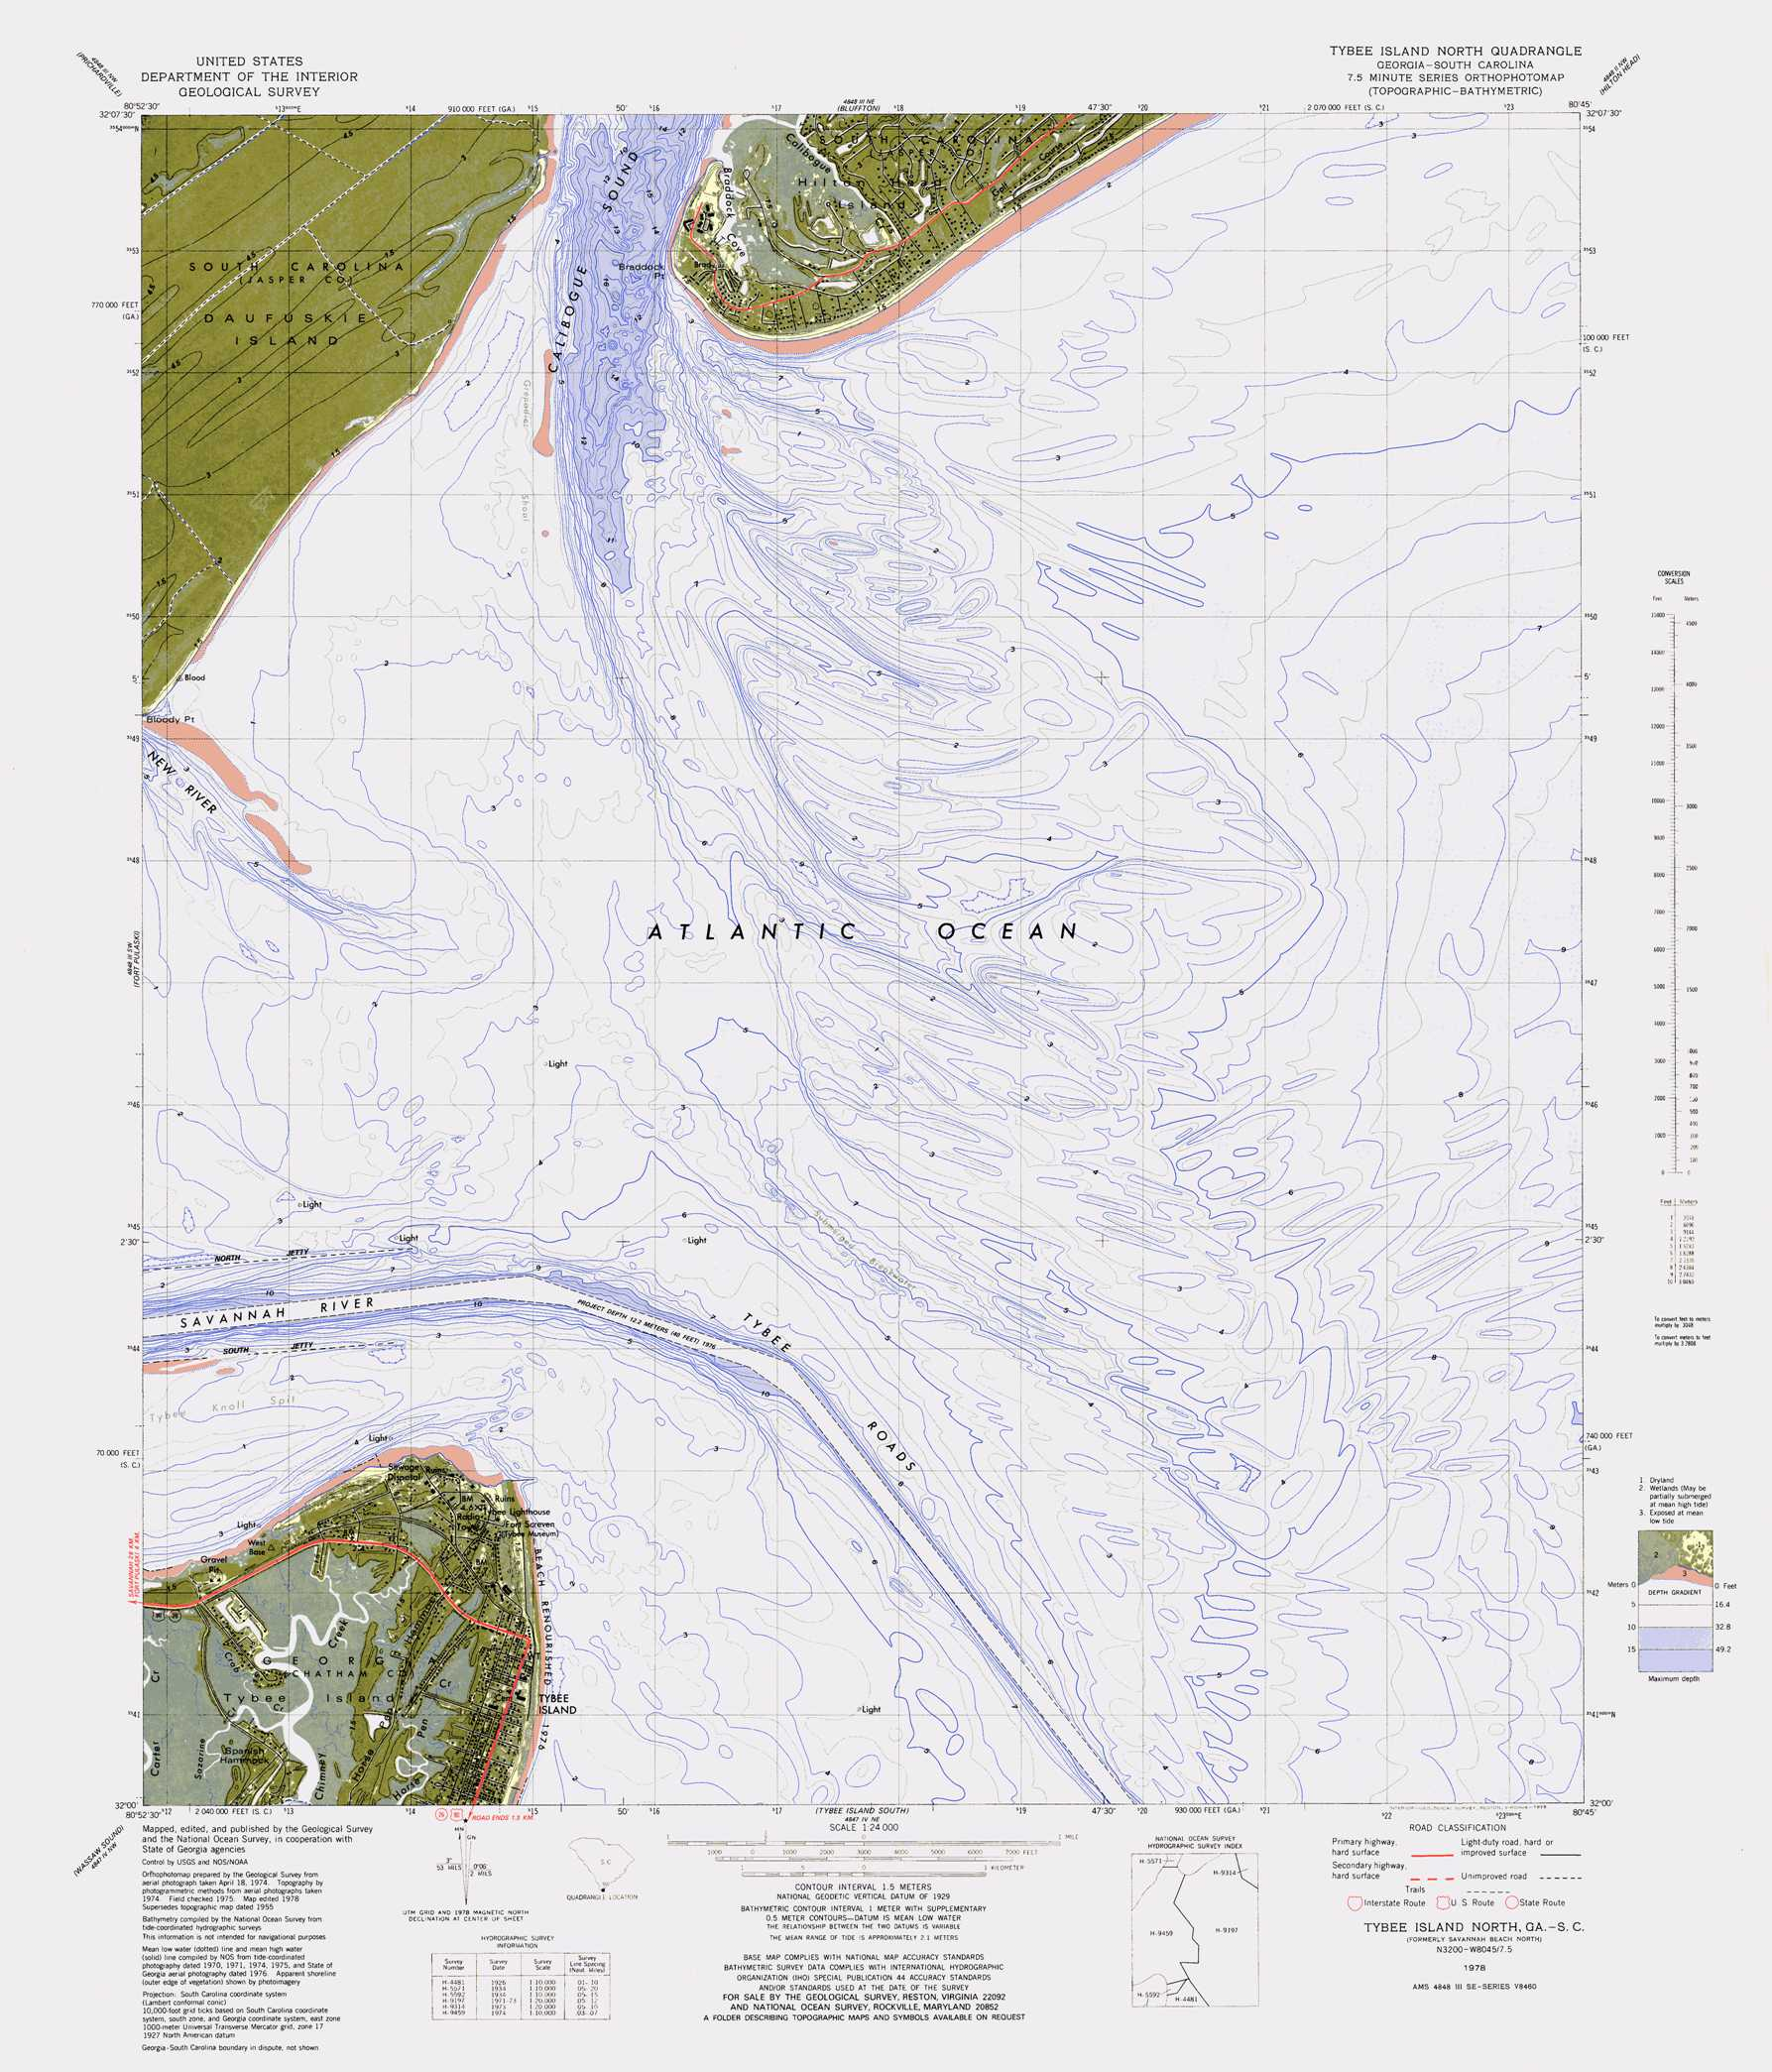 Tybee Island North topographic map, SC, GA - USGS Topo Quad 32080a7